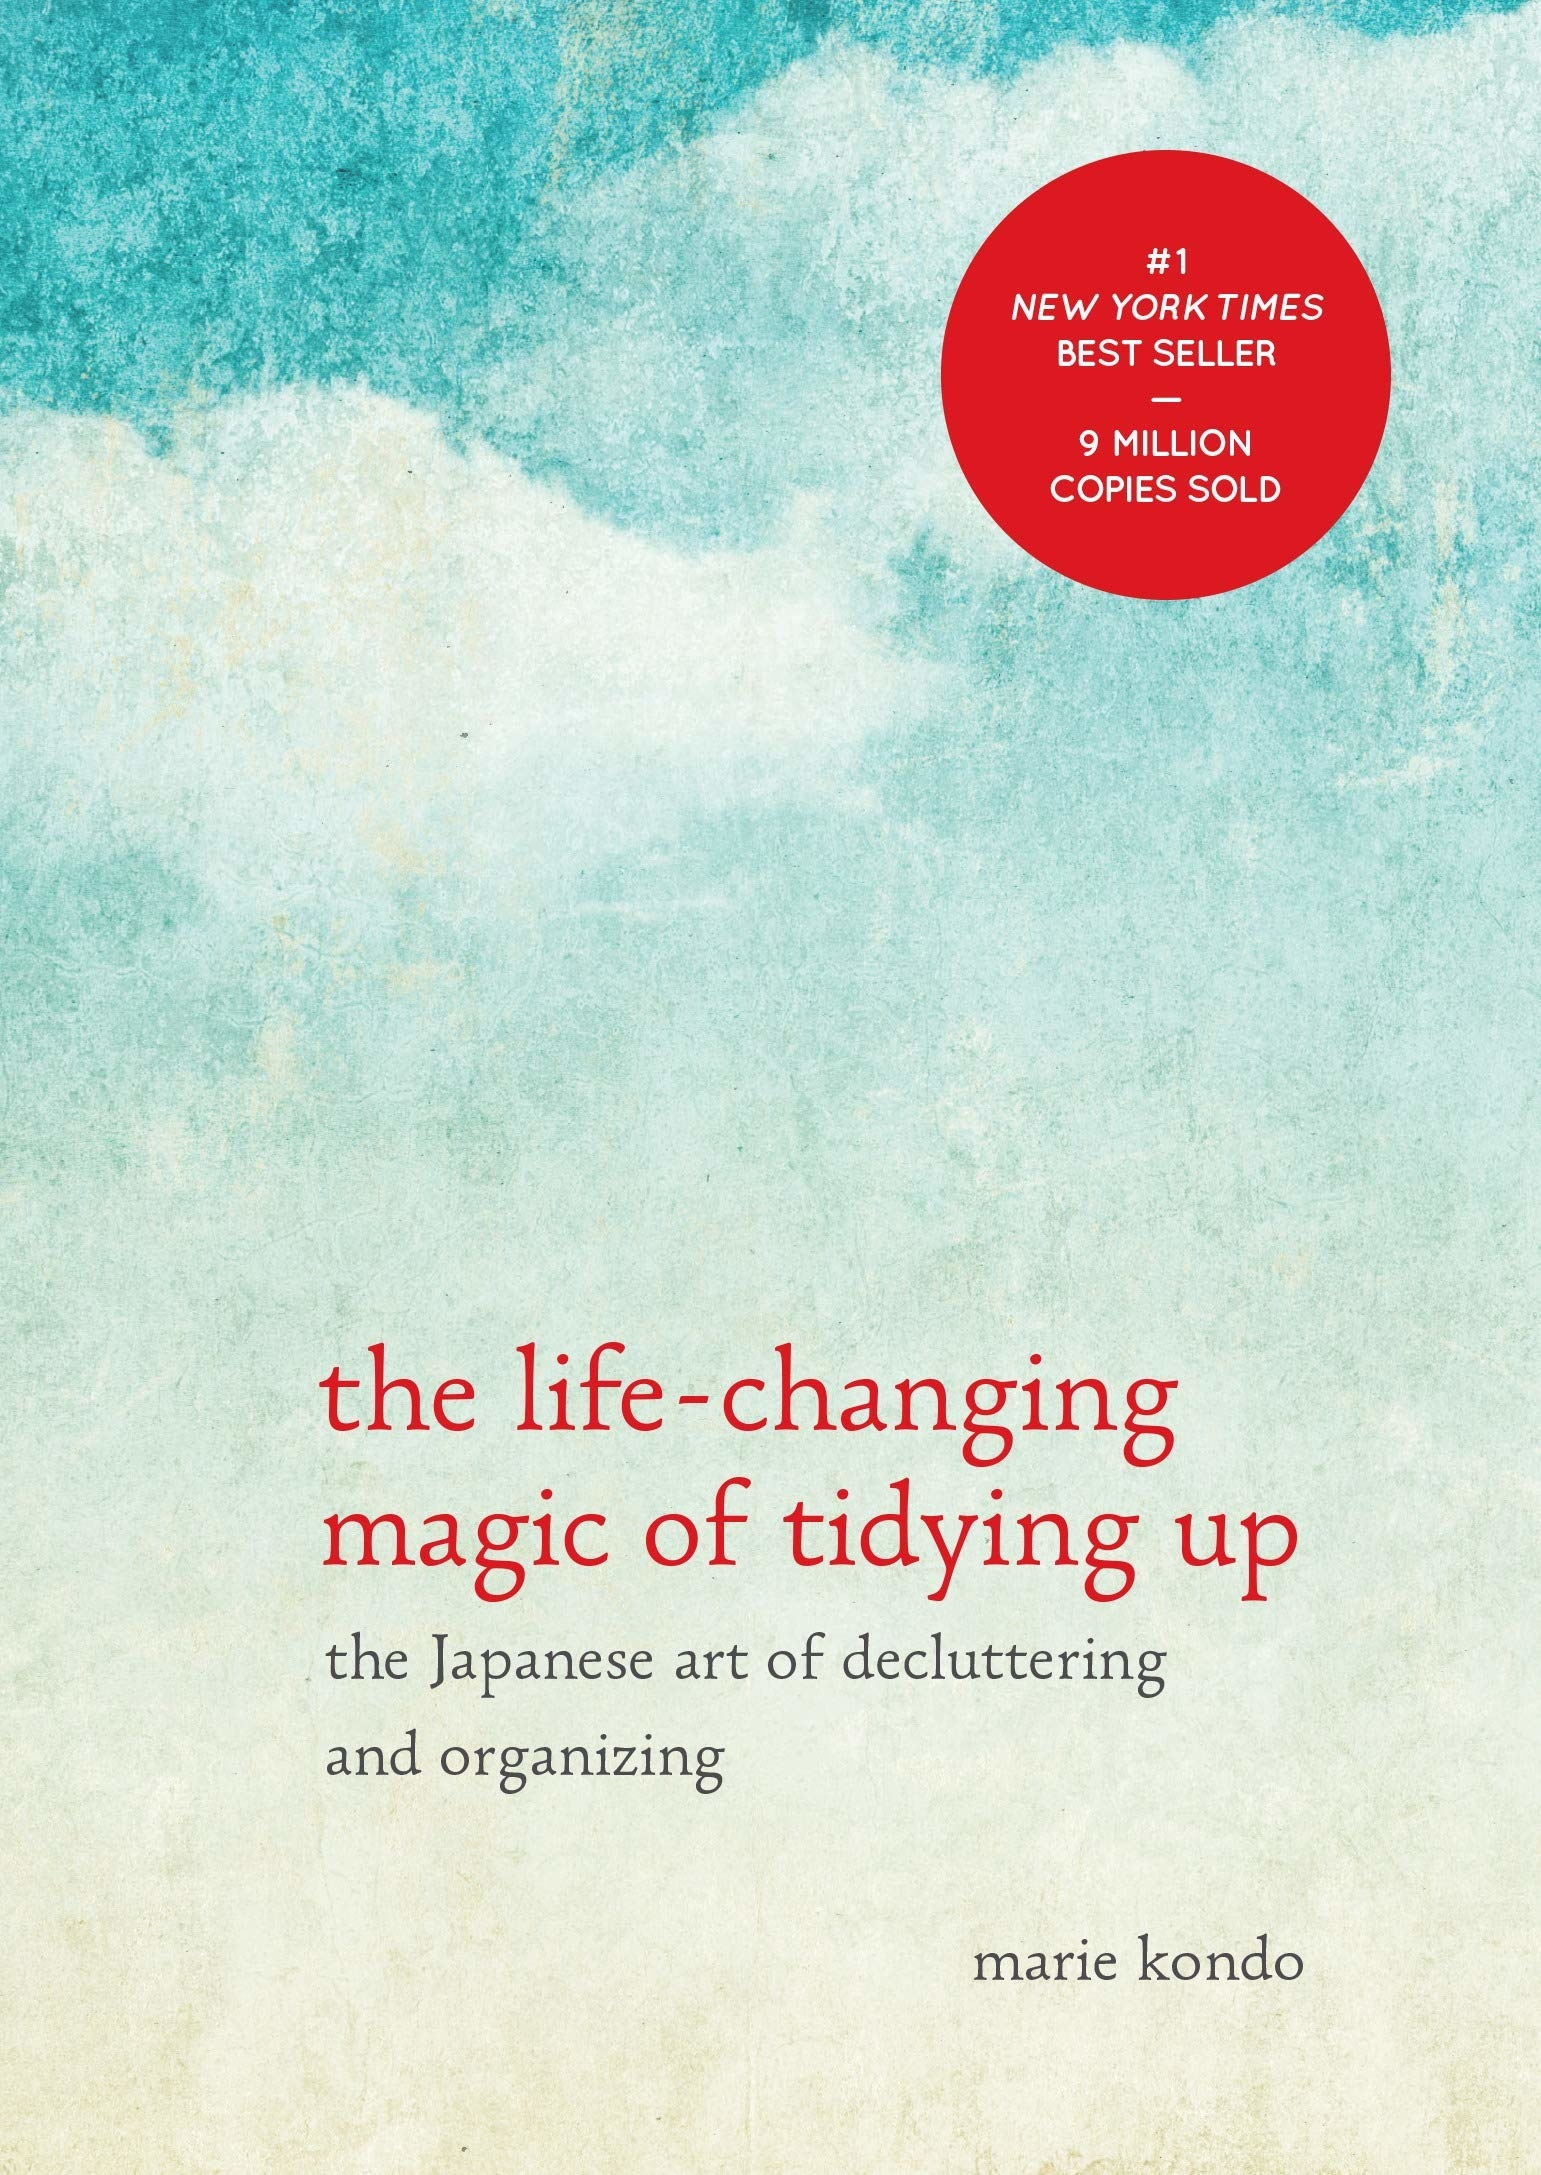 """the cover of """"the life-changing magic of tidying up"""" by marie kondo"""